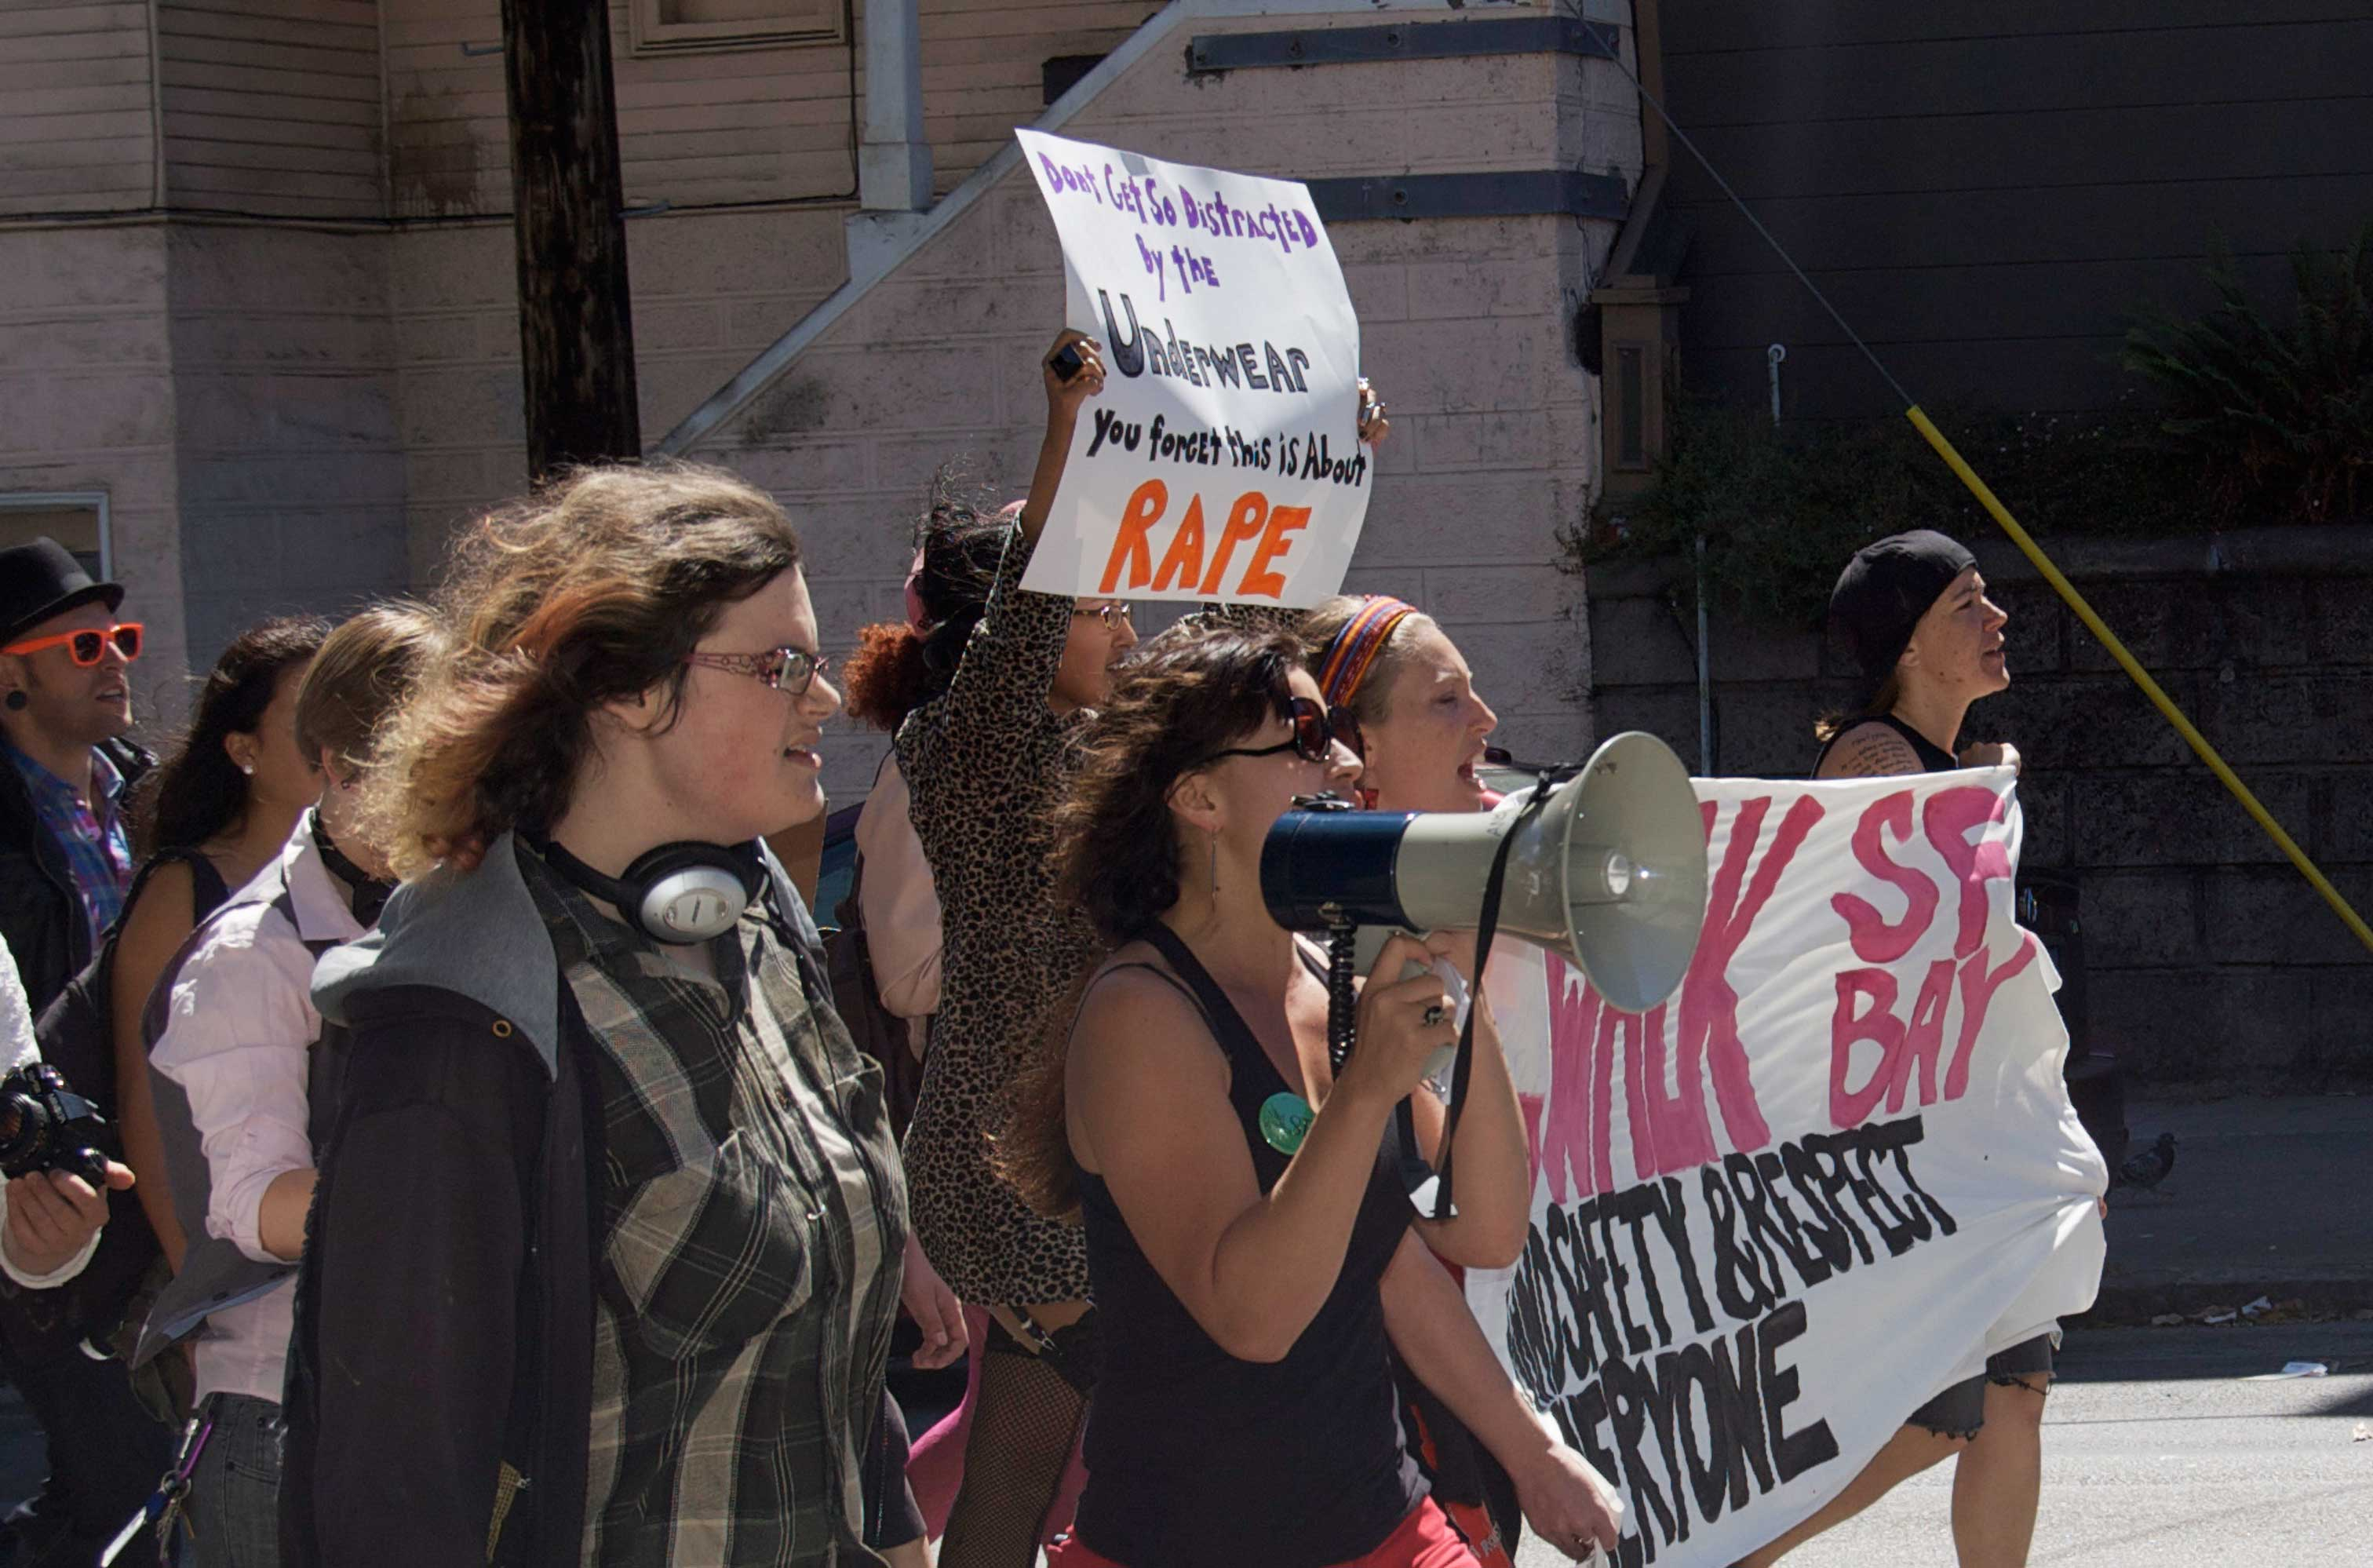 Supporters and organizers of the second annual SlutWalk march and chant on Sanchez street in San Francisco on Sept. 8, 2012. Photo by Francesca Alati/The Guardsman